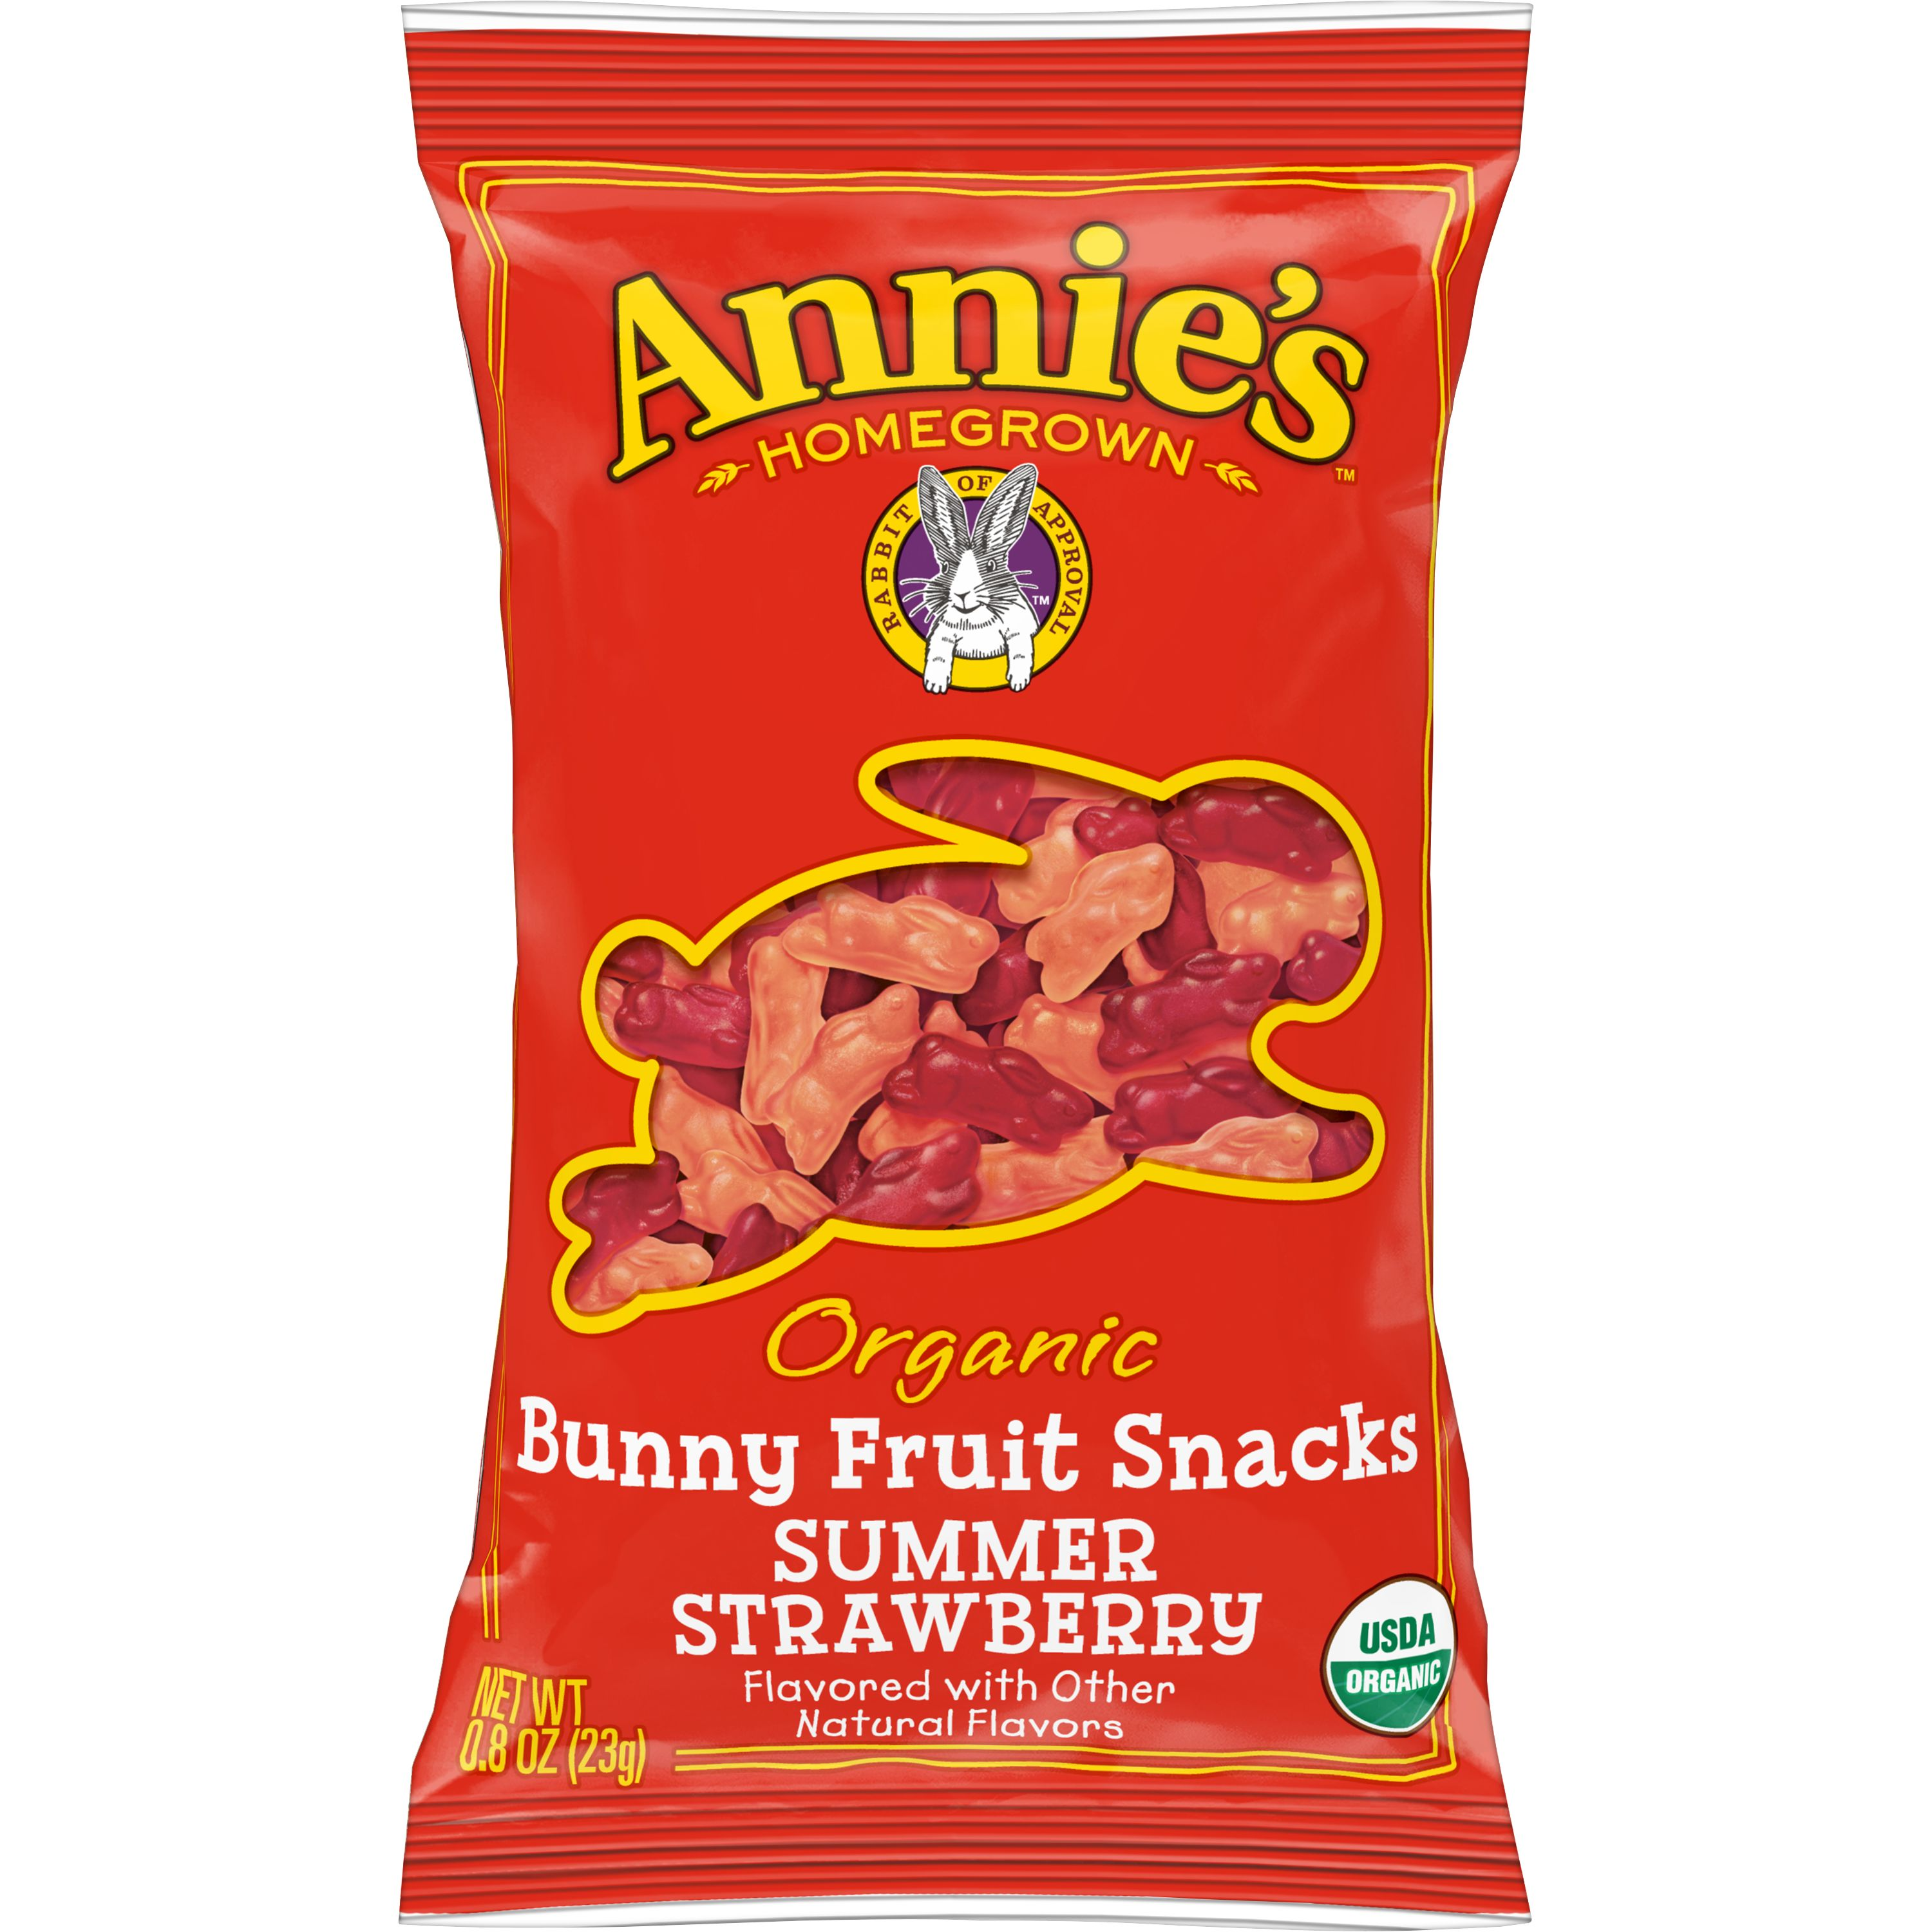 Annie's(r) Homegrown Organic Summer Strawberry Bunny Fruit Snacks